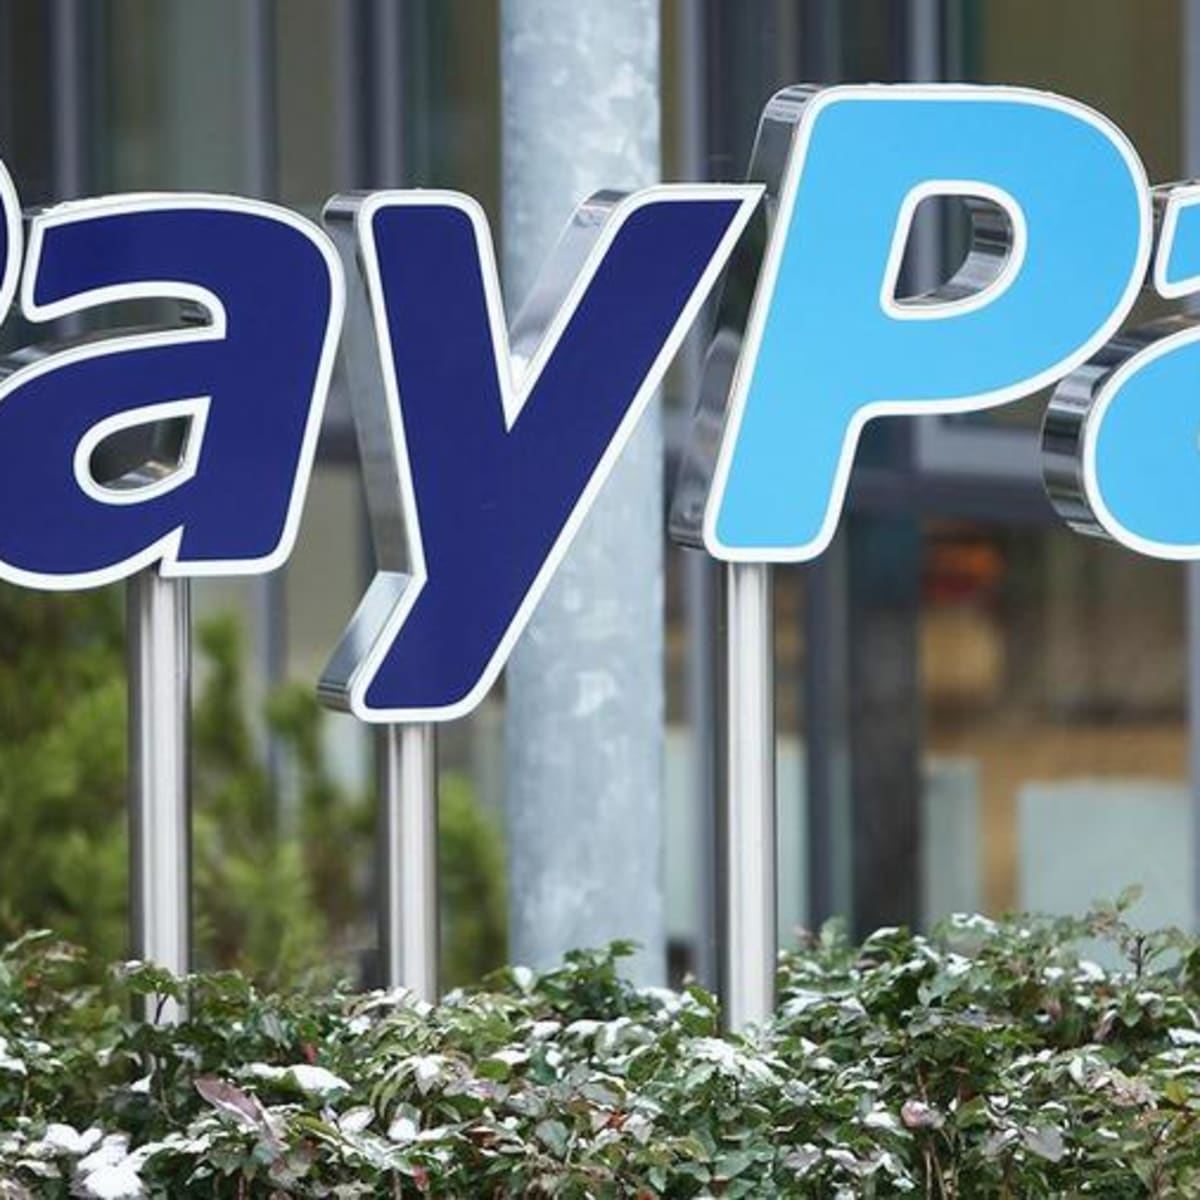 thestreet.com - Eric Jhonsa - New Survey Shows How Bitcoin Is Giving PayPal a Boost